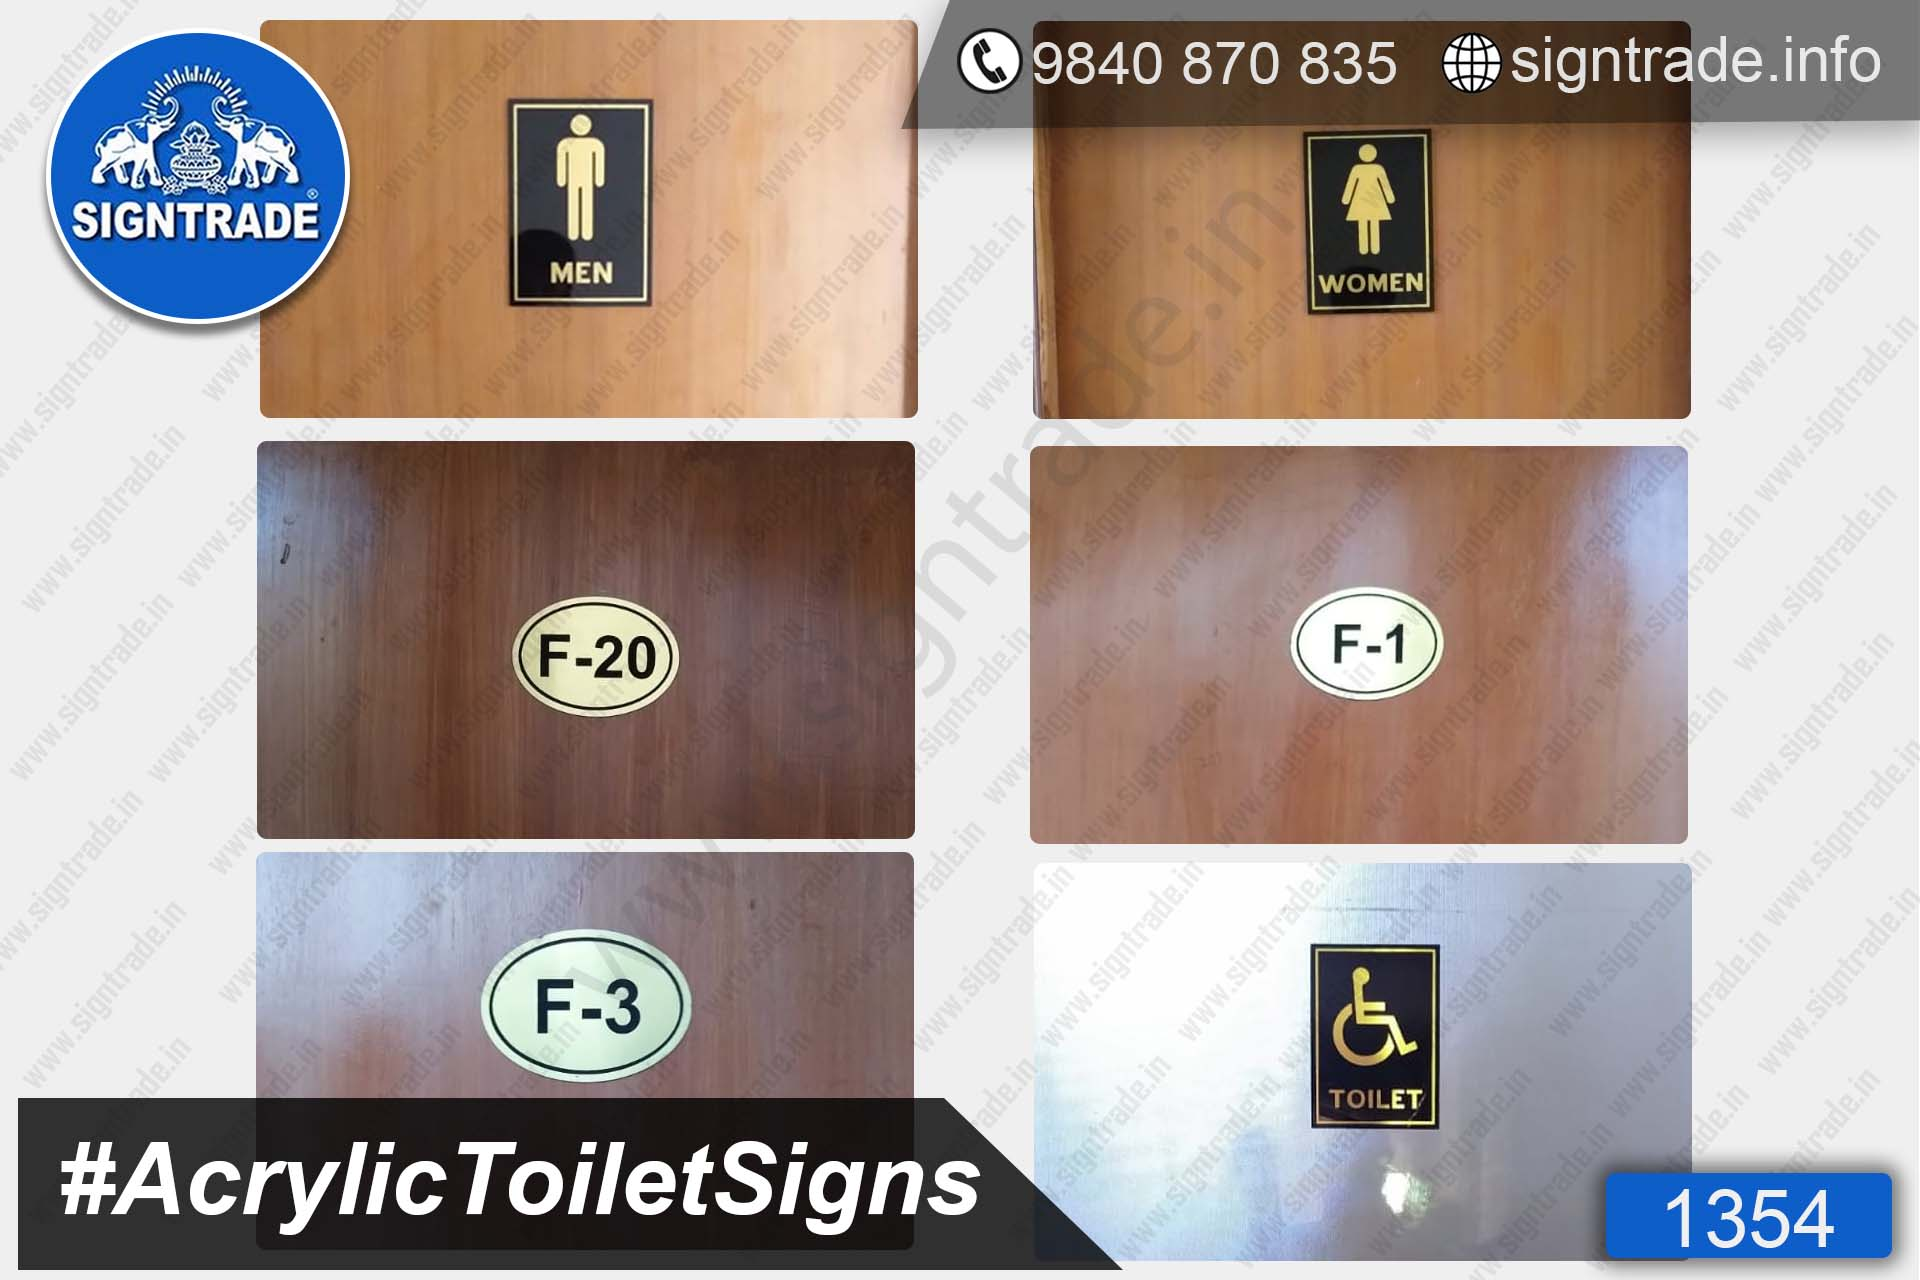 Acrylic Toilet Signs